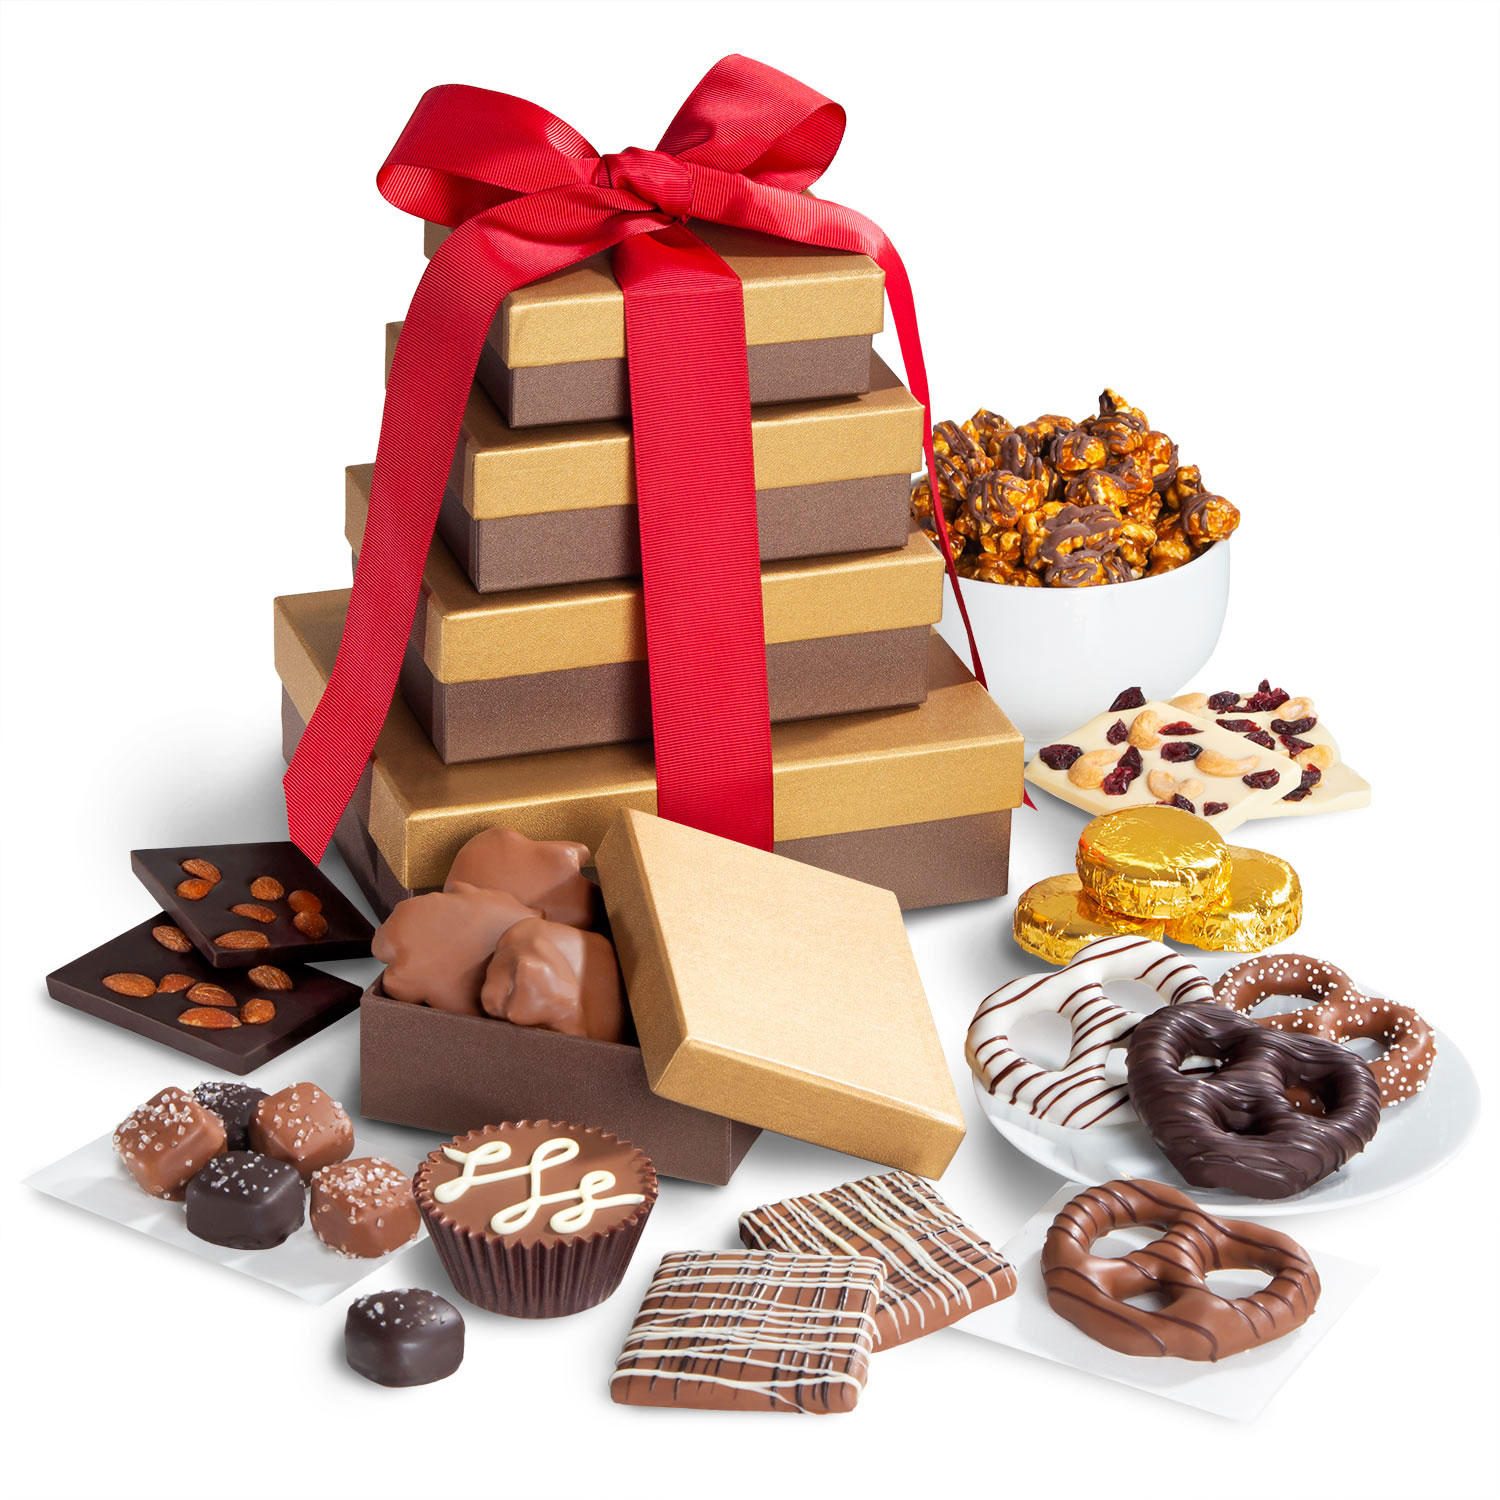 Golden State Fruit Chocolate Indulgence Deluxe Gift Tower